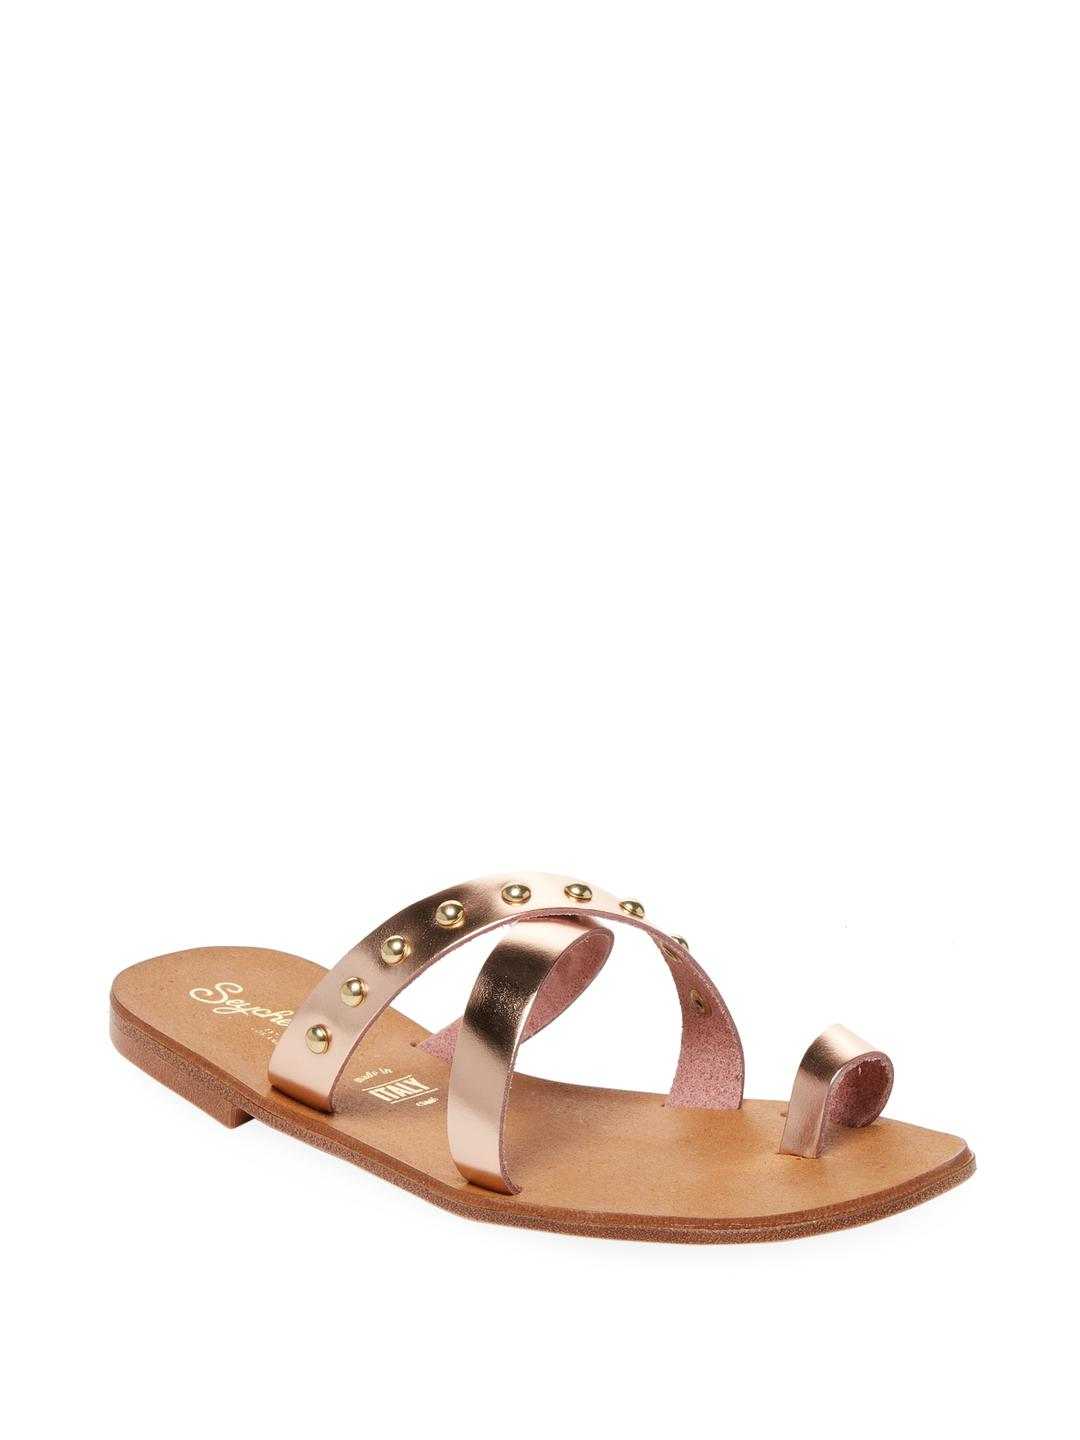 d28504b86544de Lyst - Seychelles Time Out Studded Sandal